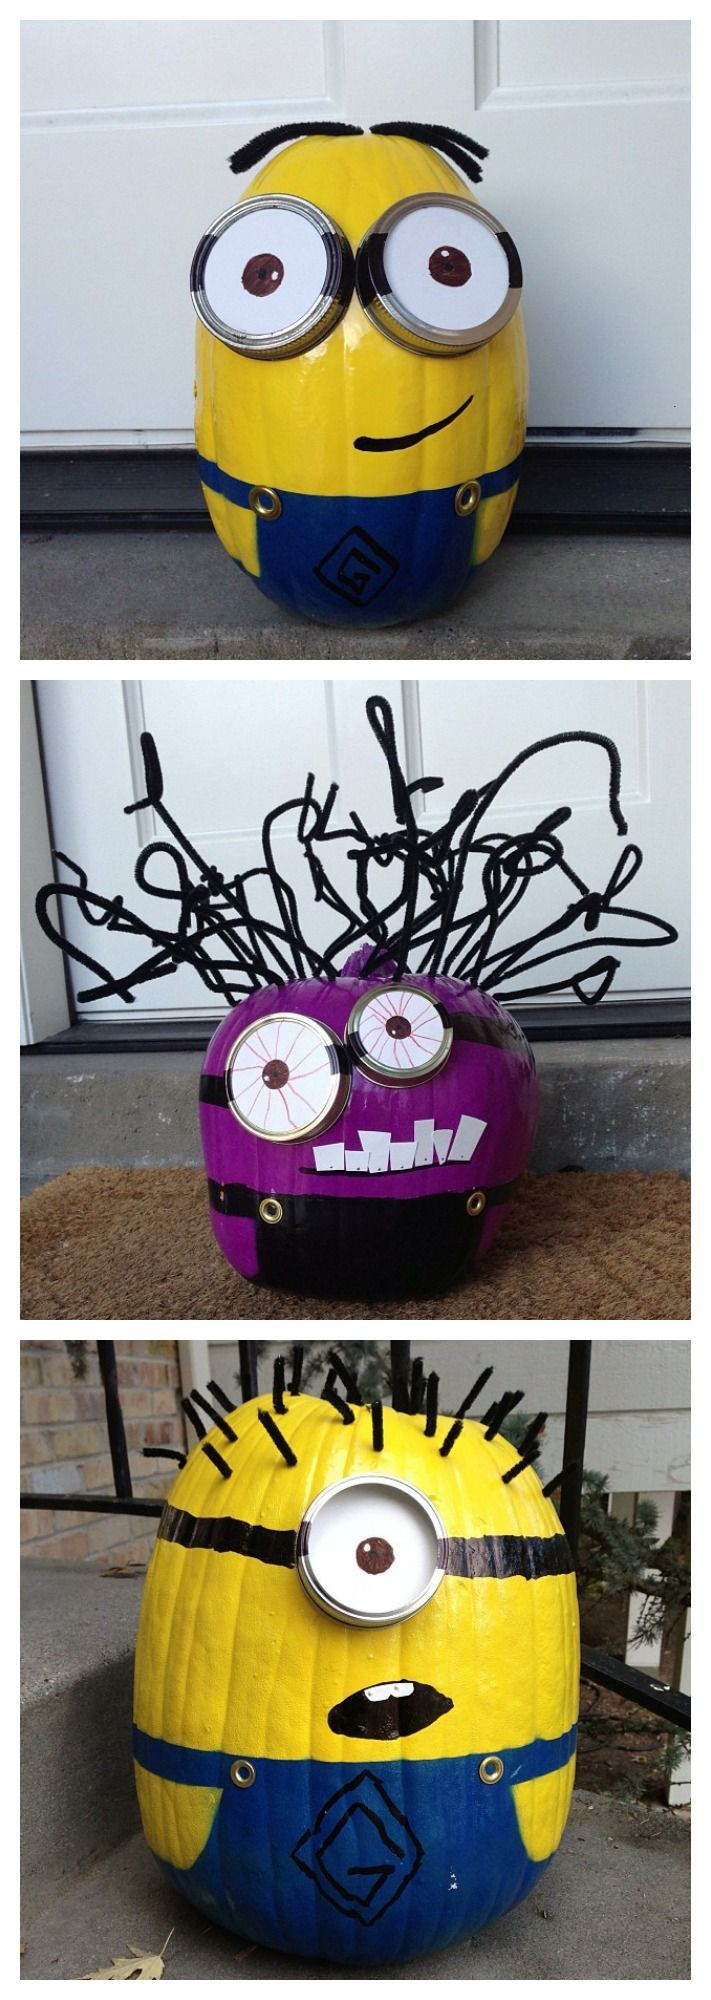 Step by step instructions to make your own Minion pumpkins this Halloween!  I adore these fun pumpkin decorating ideas from Today's Mama